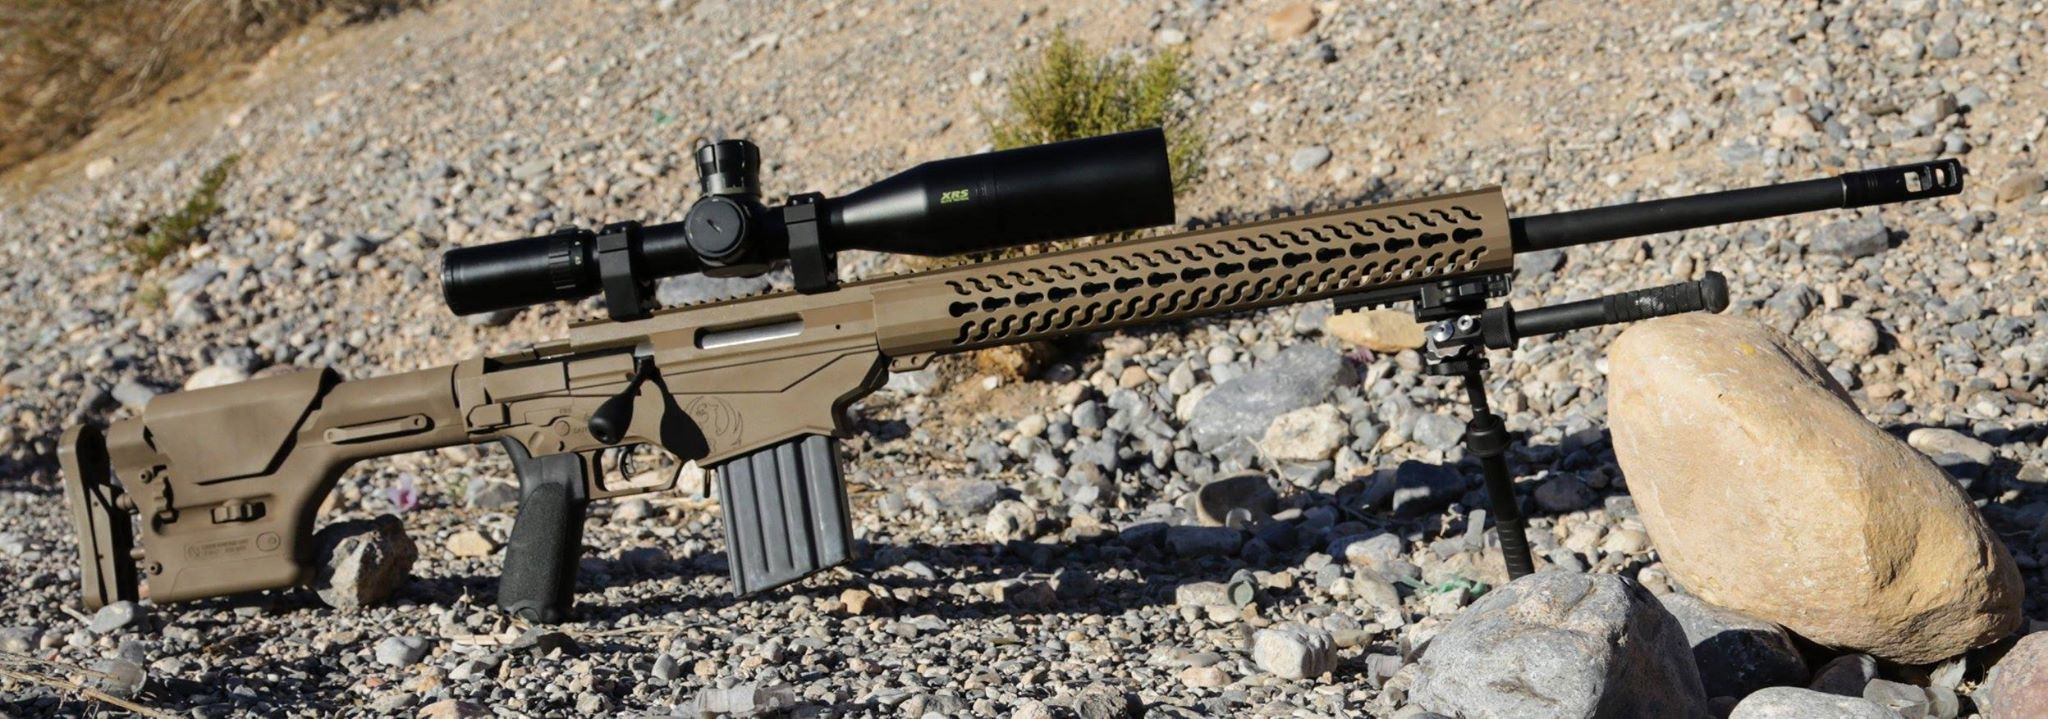 ruger precision rifle 300 win mag